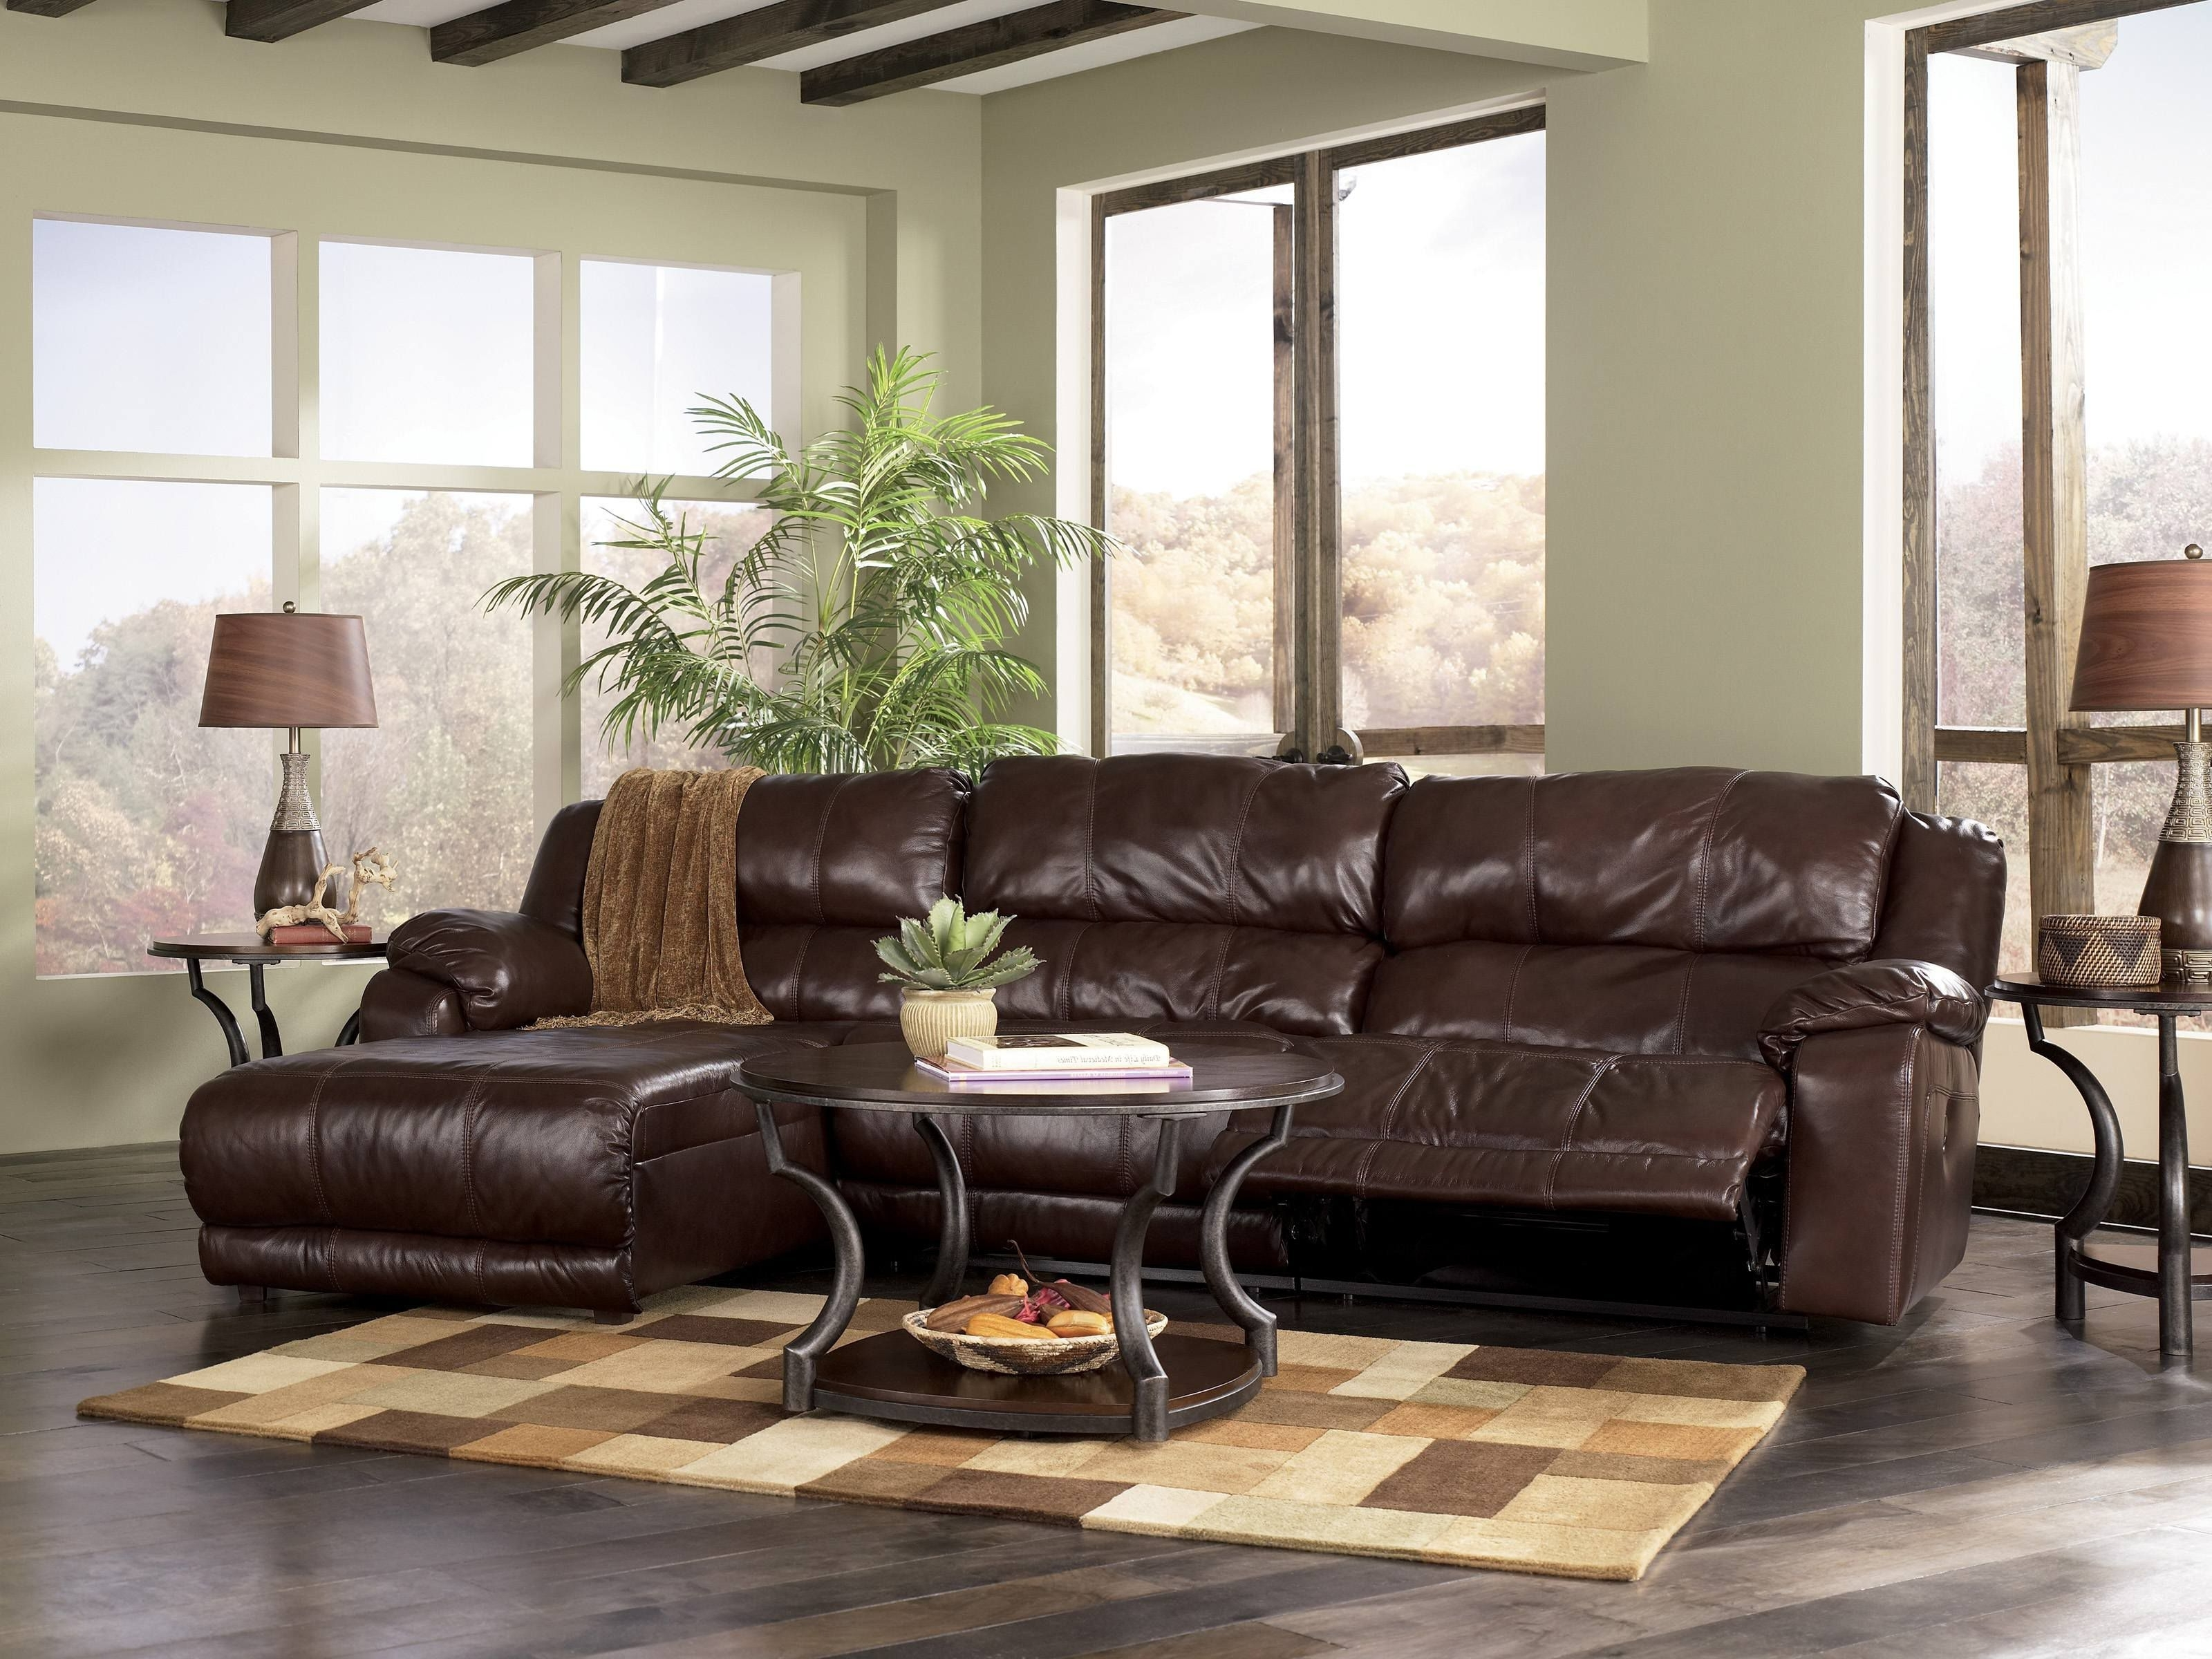 2018 Braxton Sectional Sofas Intended For Sectional Sofas With Recliners (View 1 of 20)